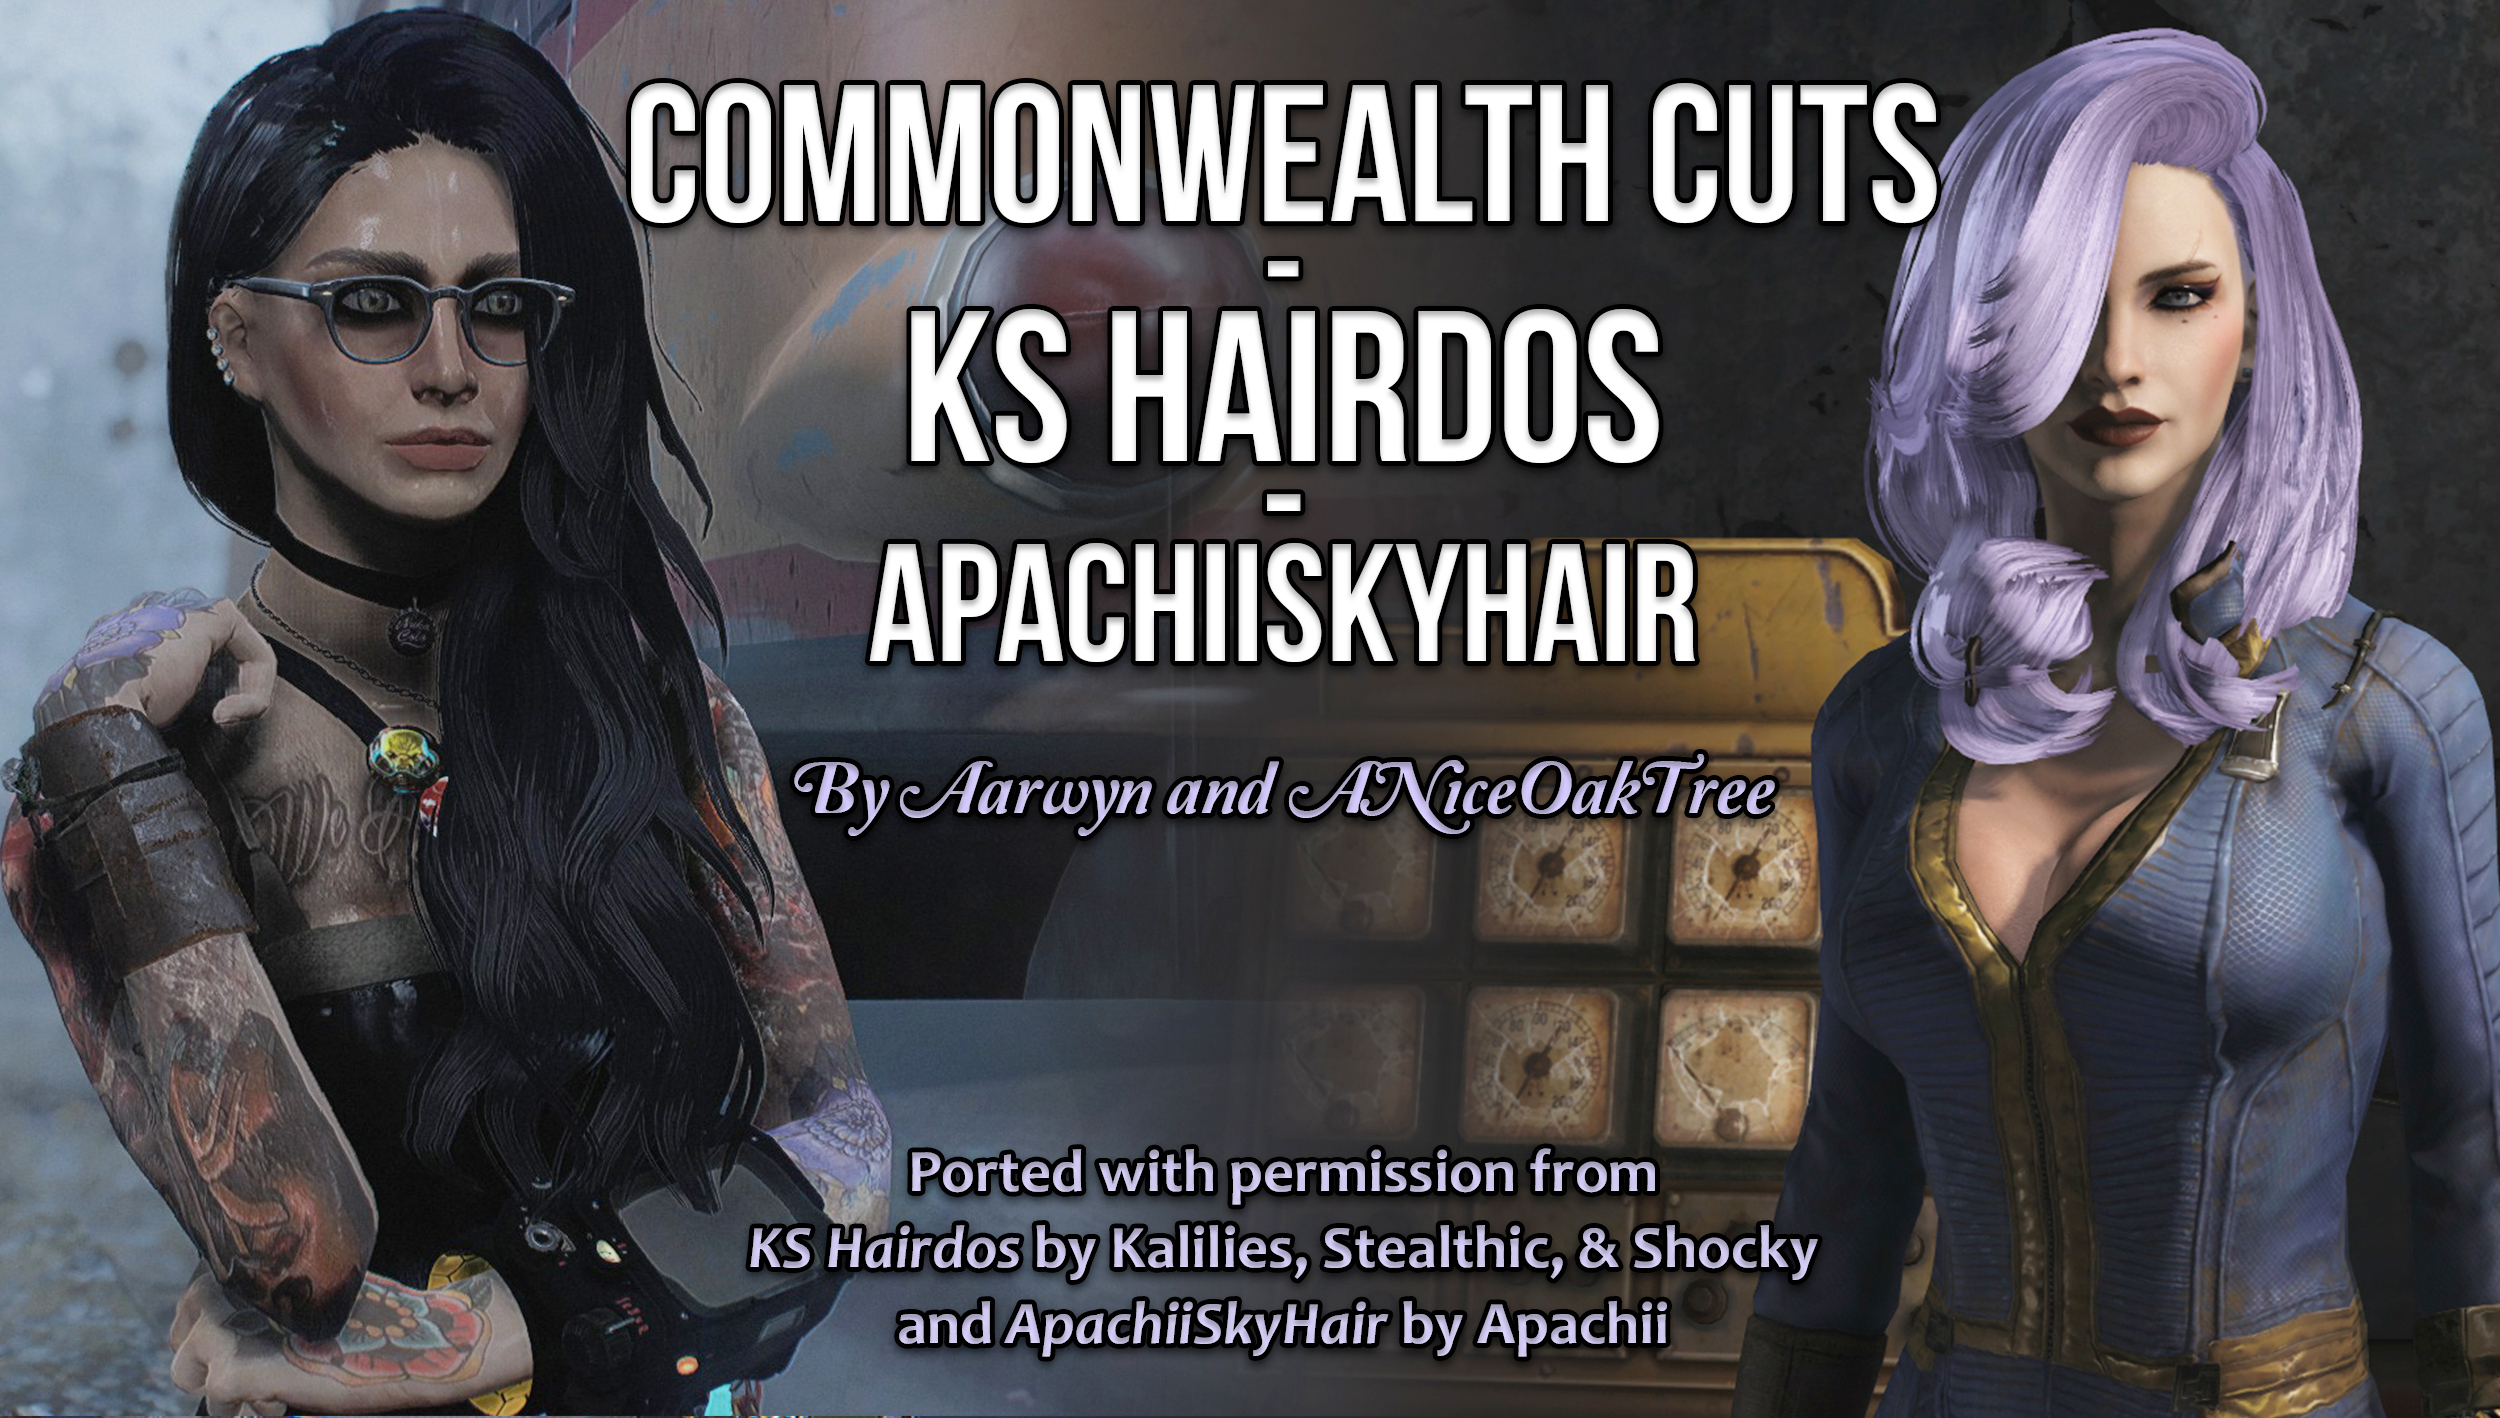 Commonwealth Cuts